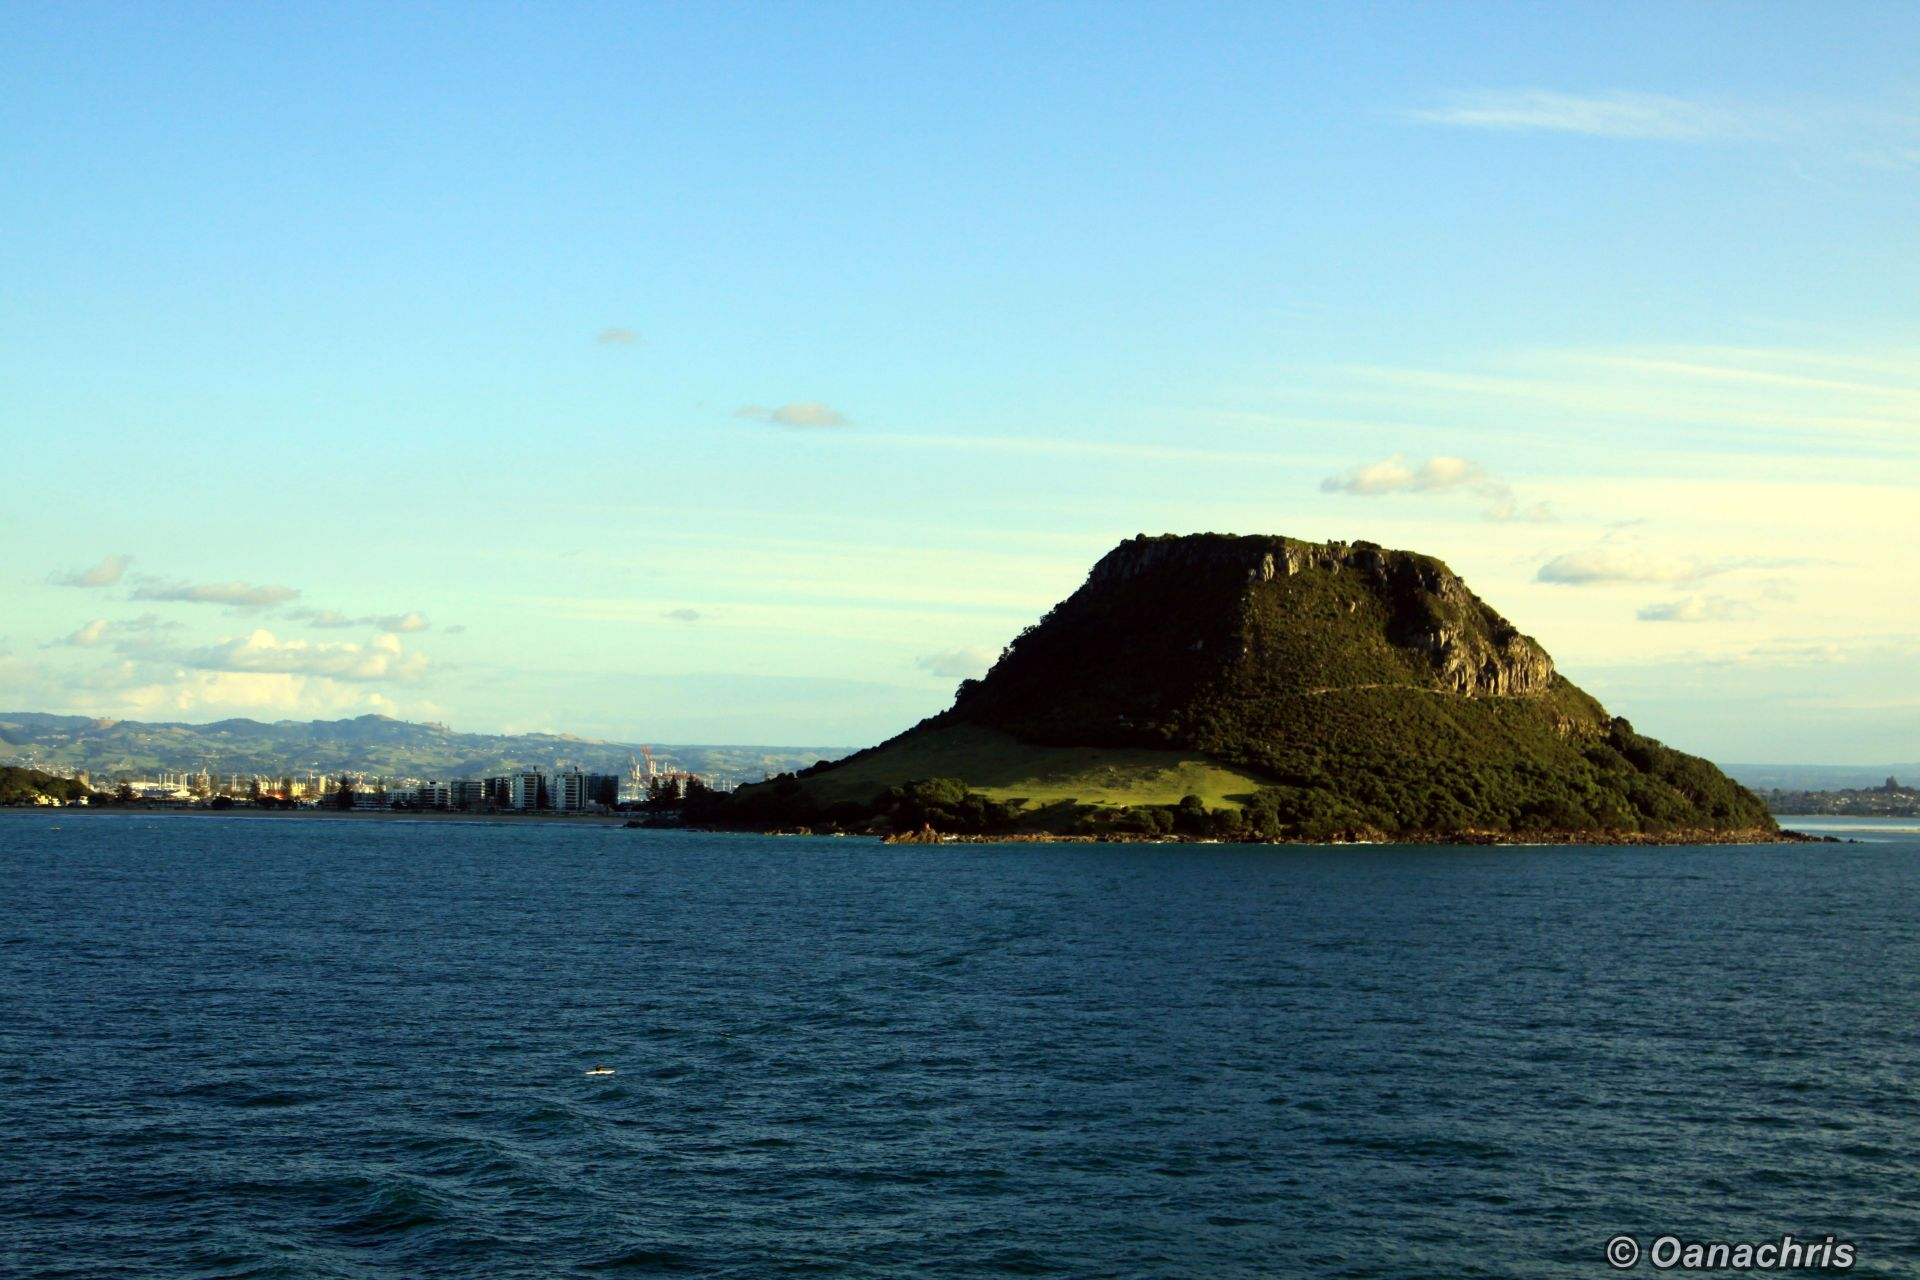 entering the port of tauranga  nz